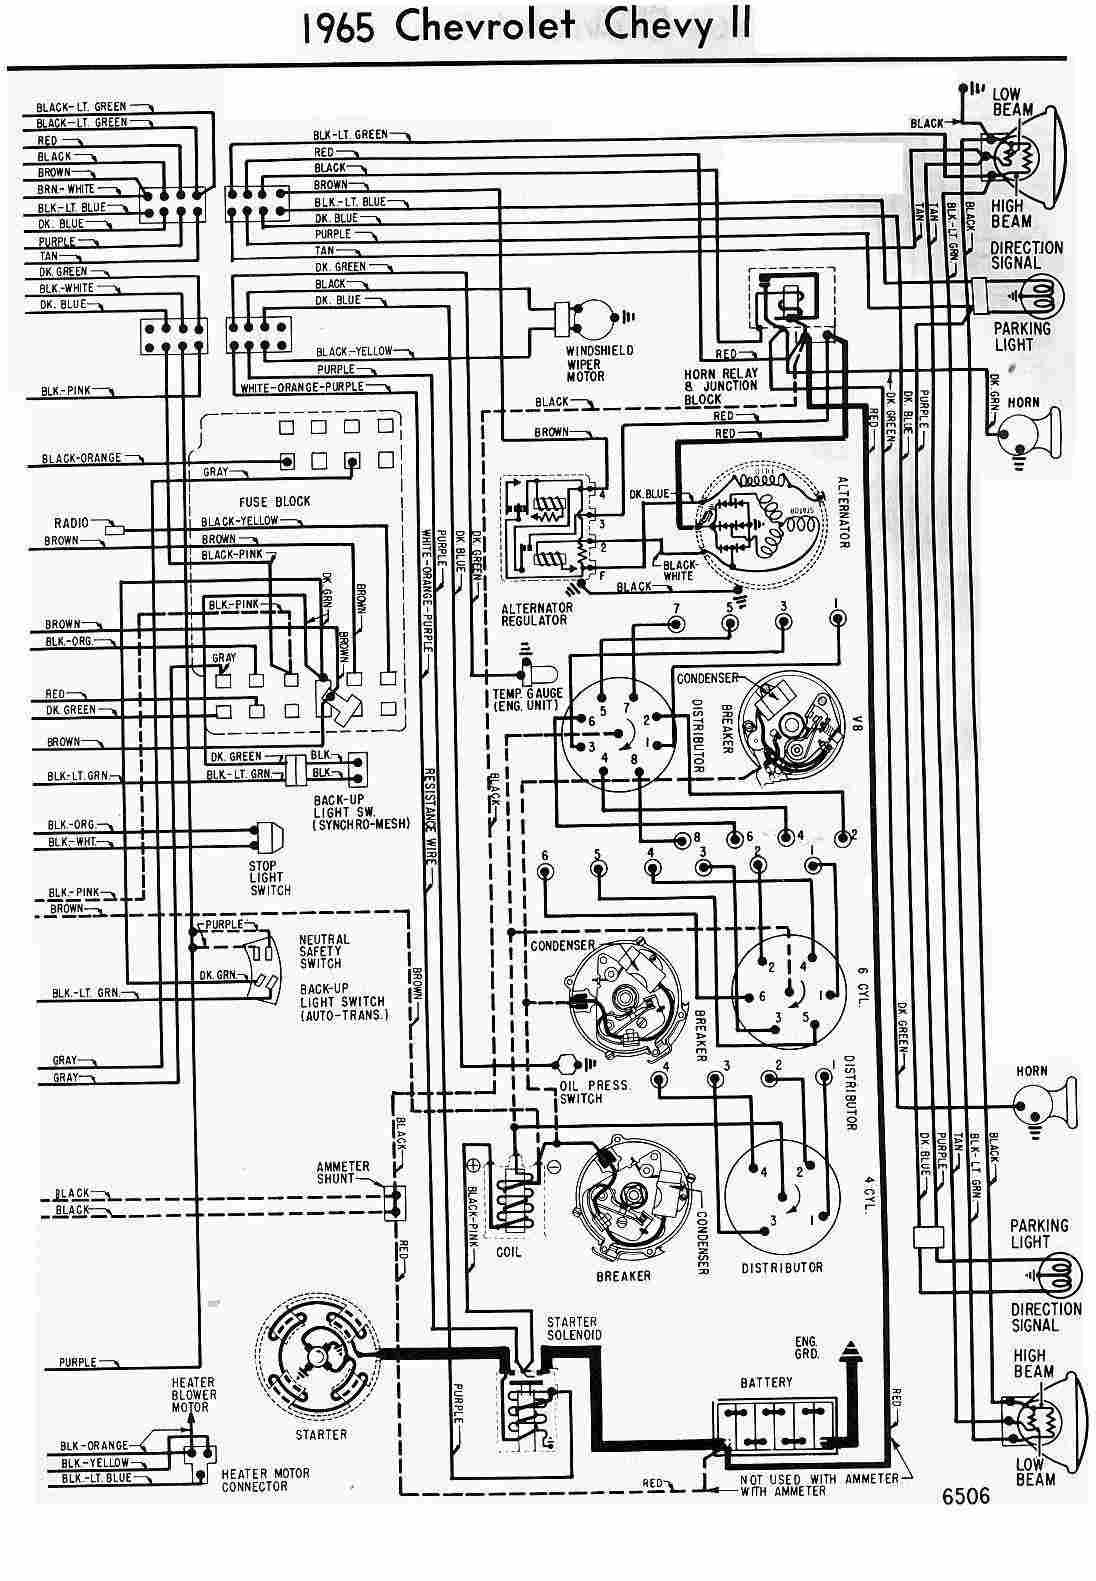 hight resolution of 1971 chevy nova wiring diagram on 1975 chevy truck wiring diagram75 nova wiring basic electronics wiring